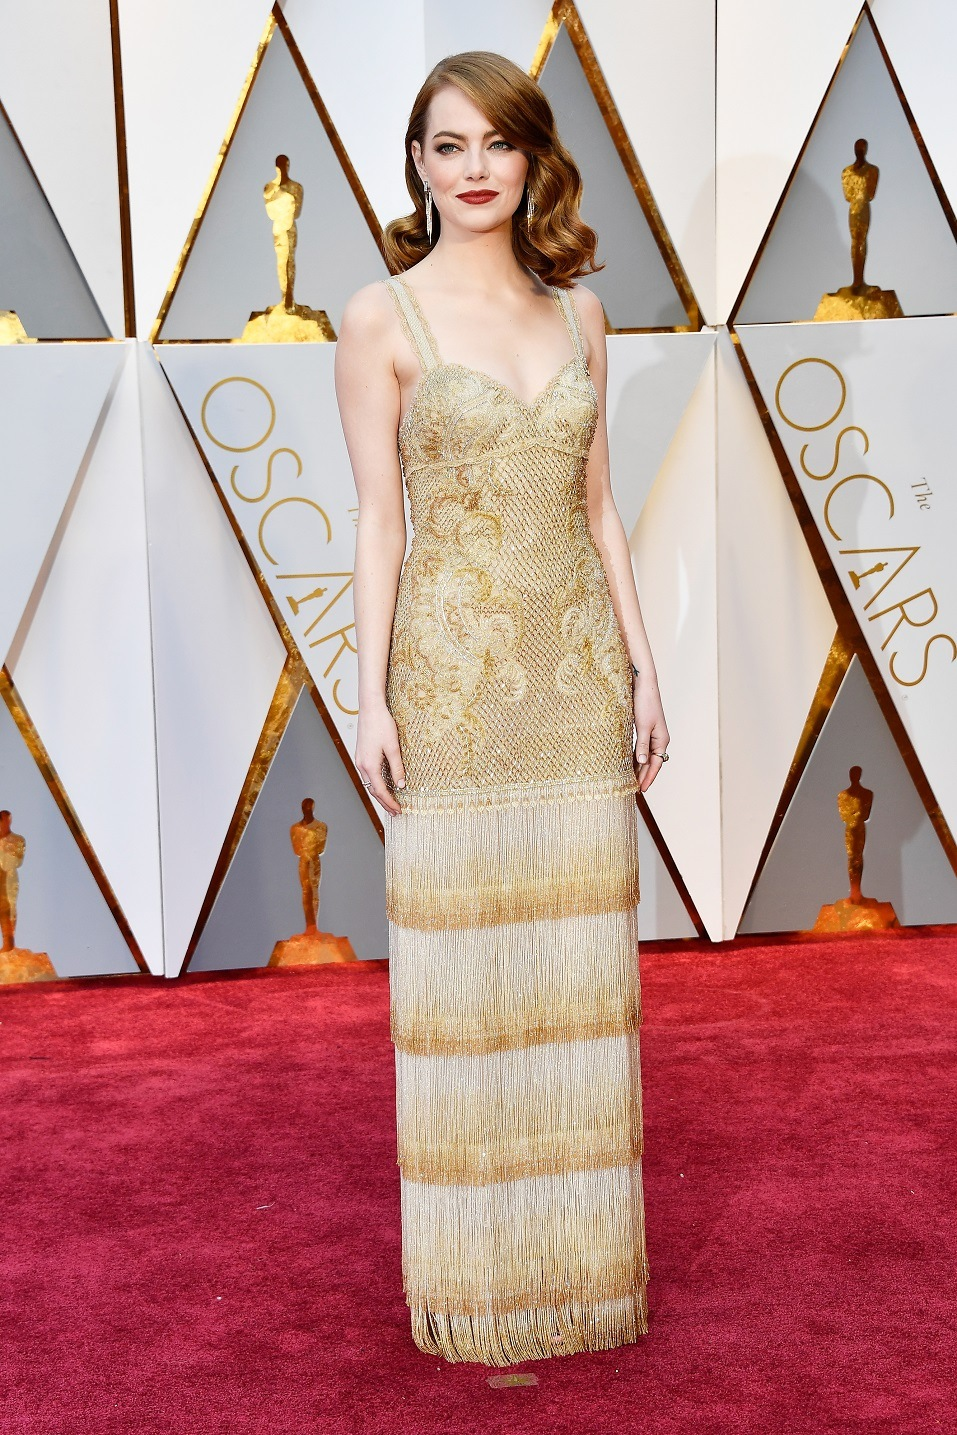 Actor Emma Stone attends the 89th Annual Academy Awards